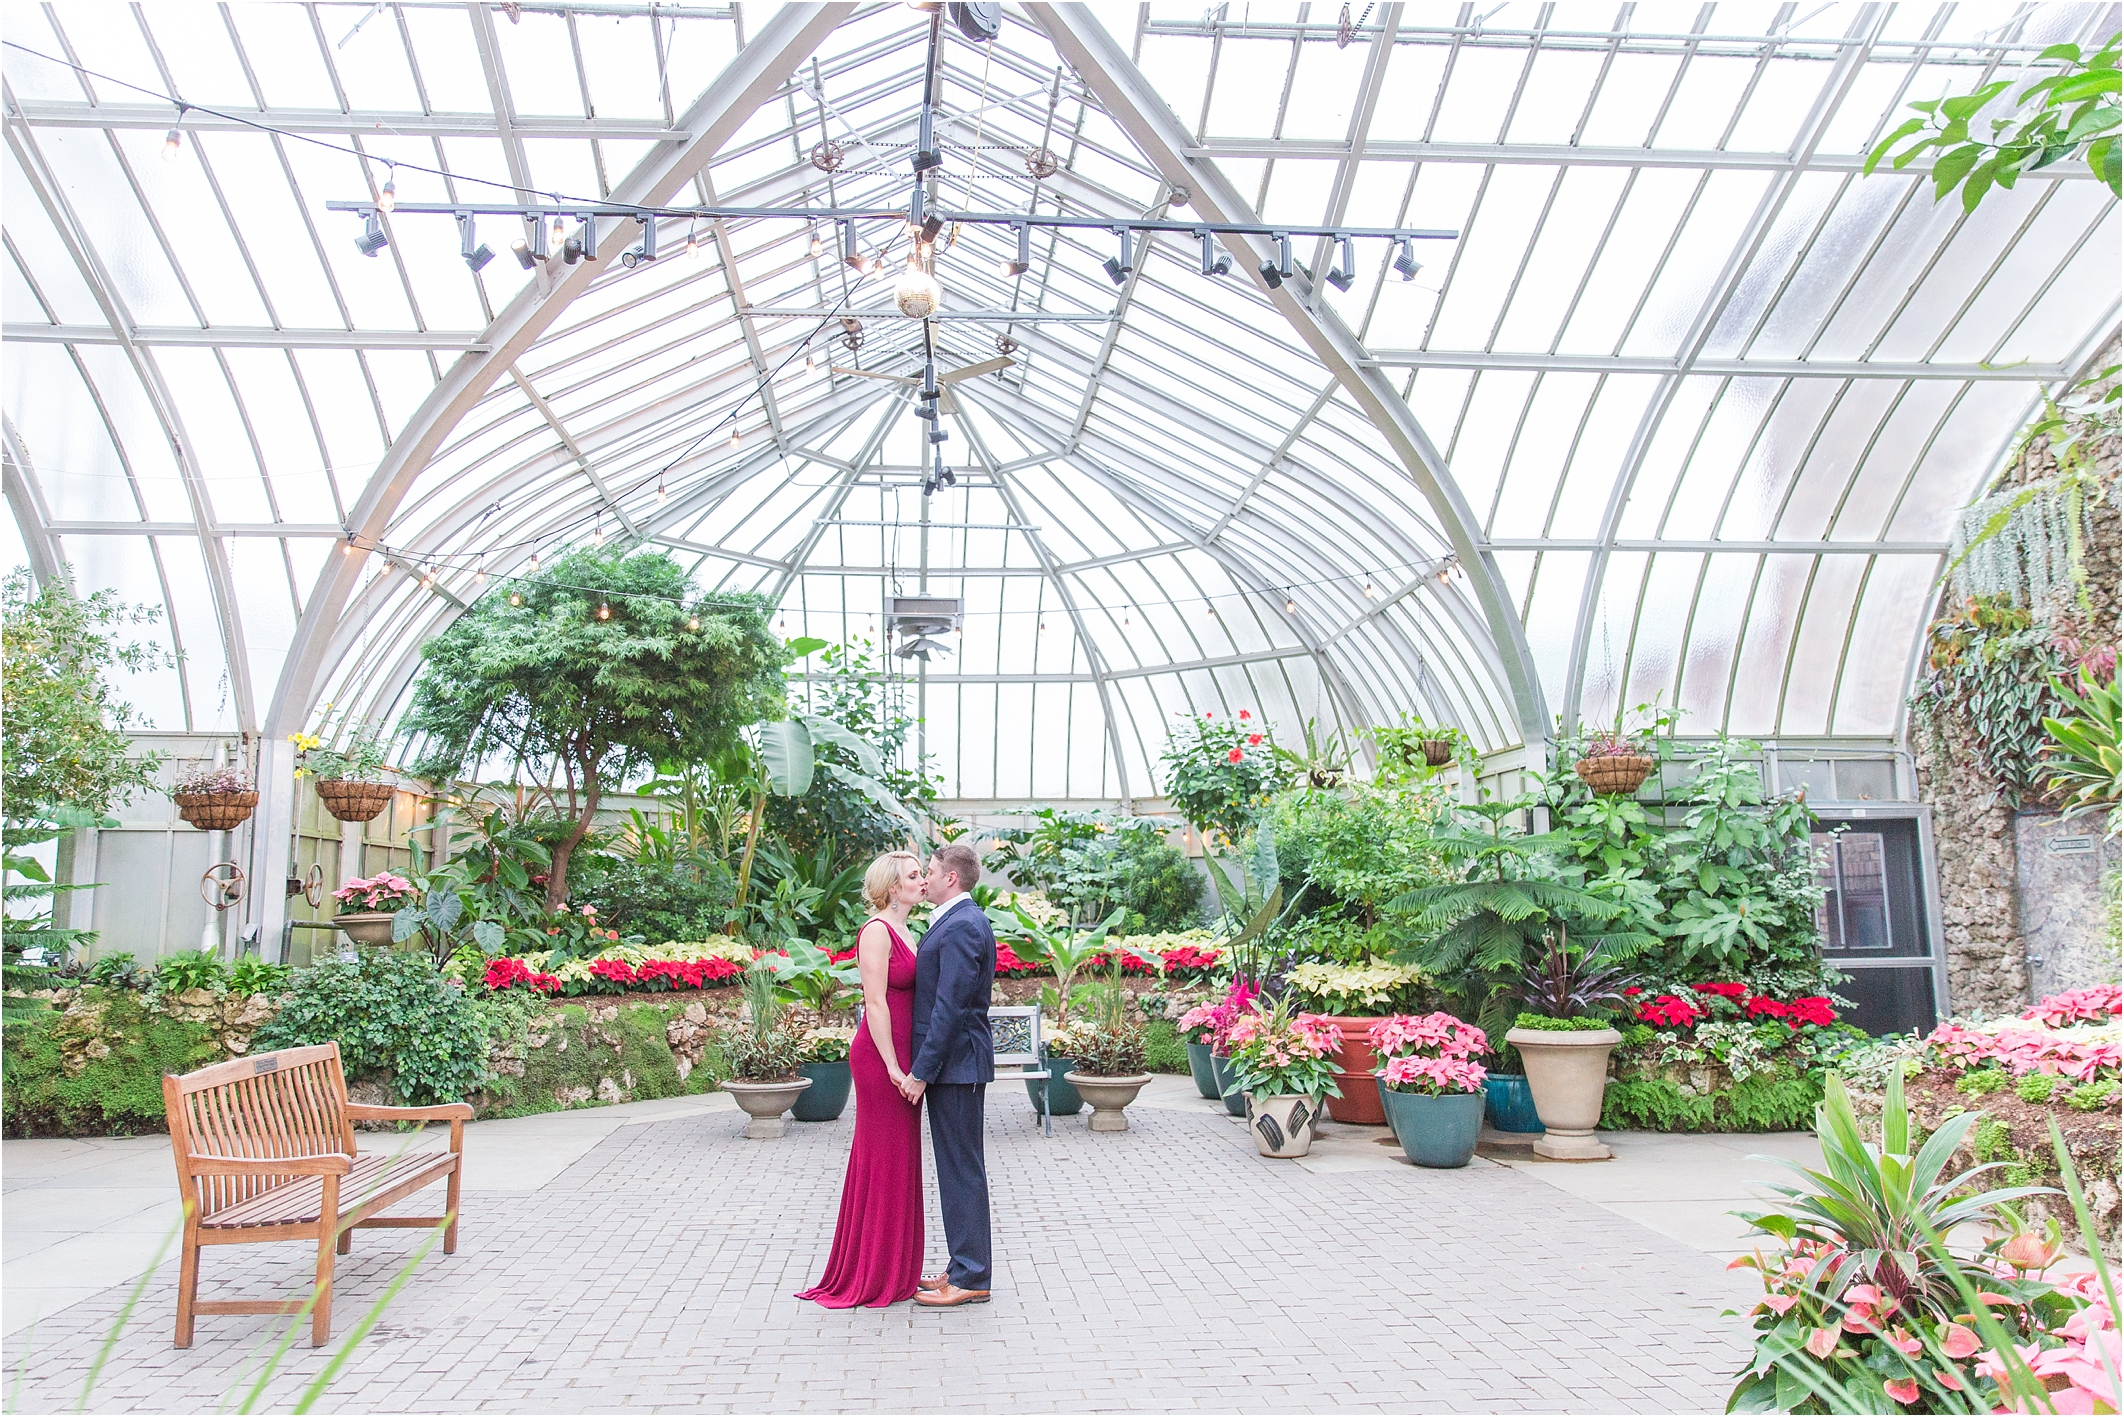 elegant-classic-belle-isle-conservatory-engagement-photos-in-detroit-mi-by-courtney-carolyn-photography_0011.jpg